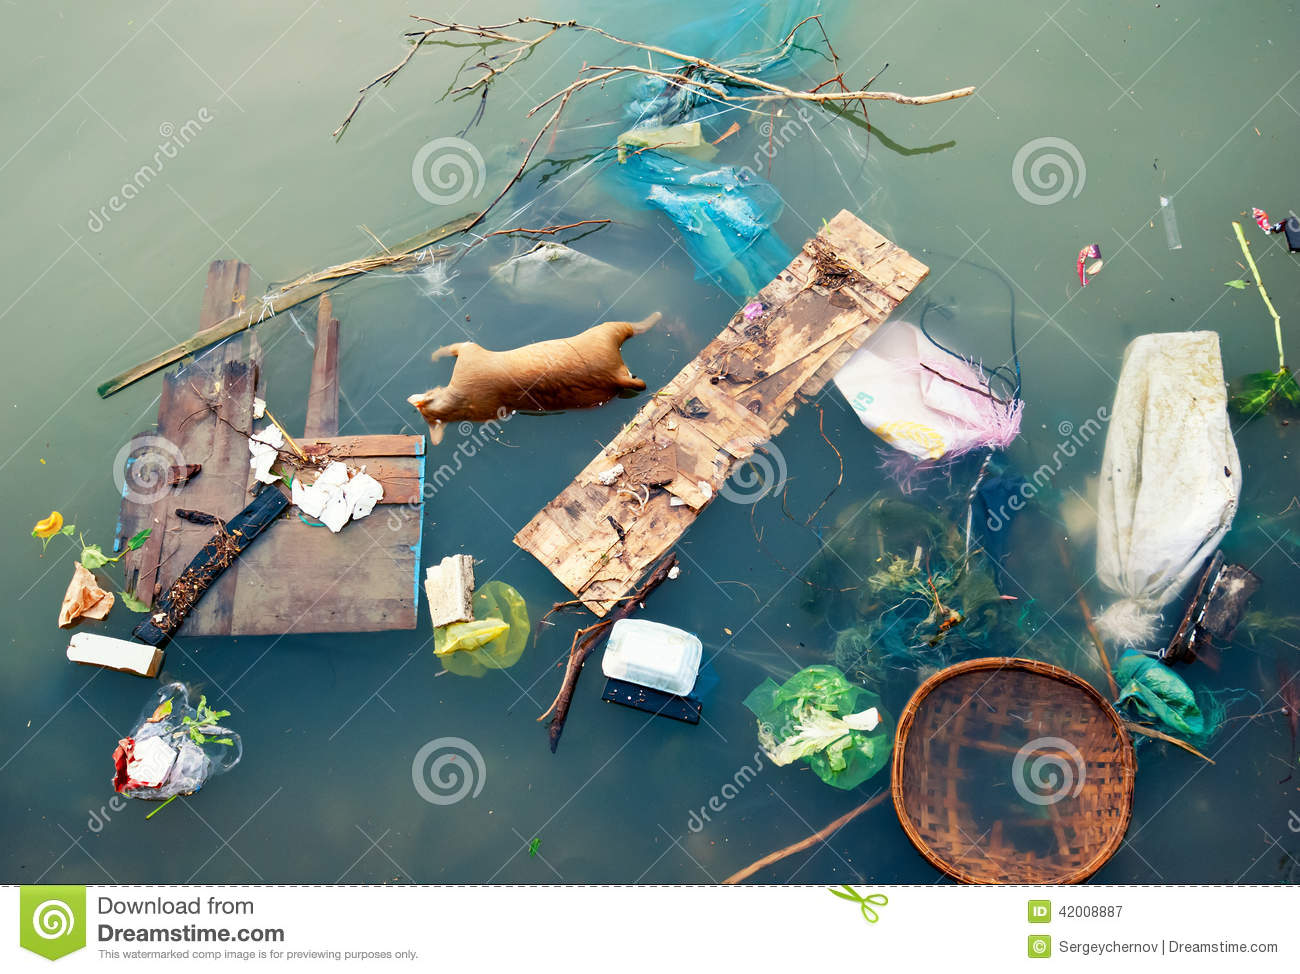 Water pollution with plastic garbage and dirty trash waste